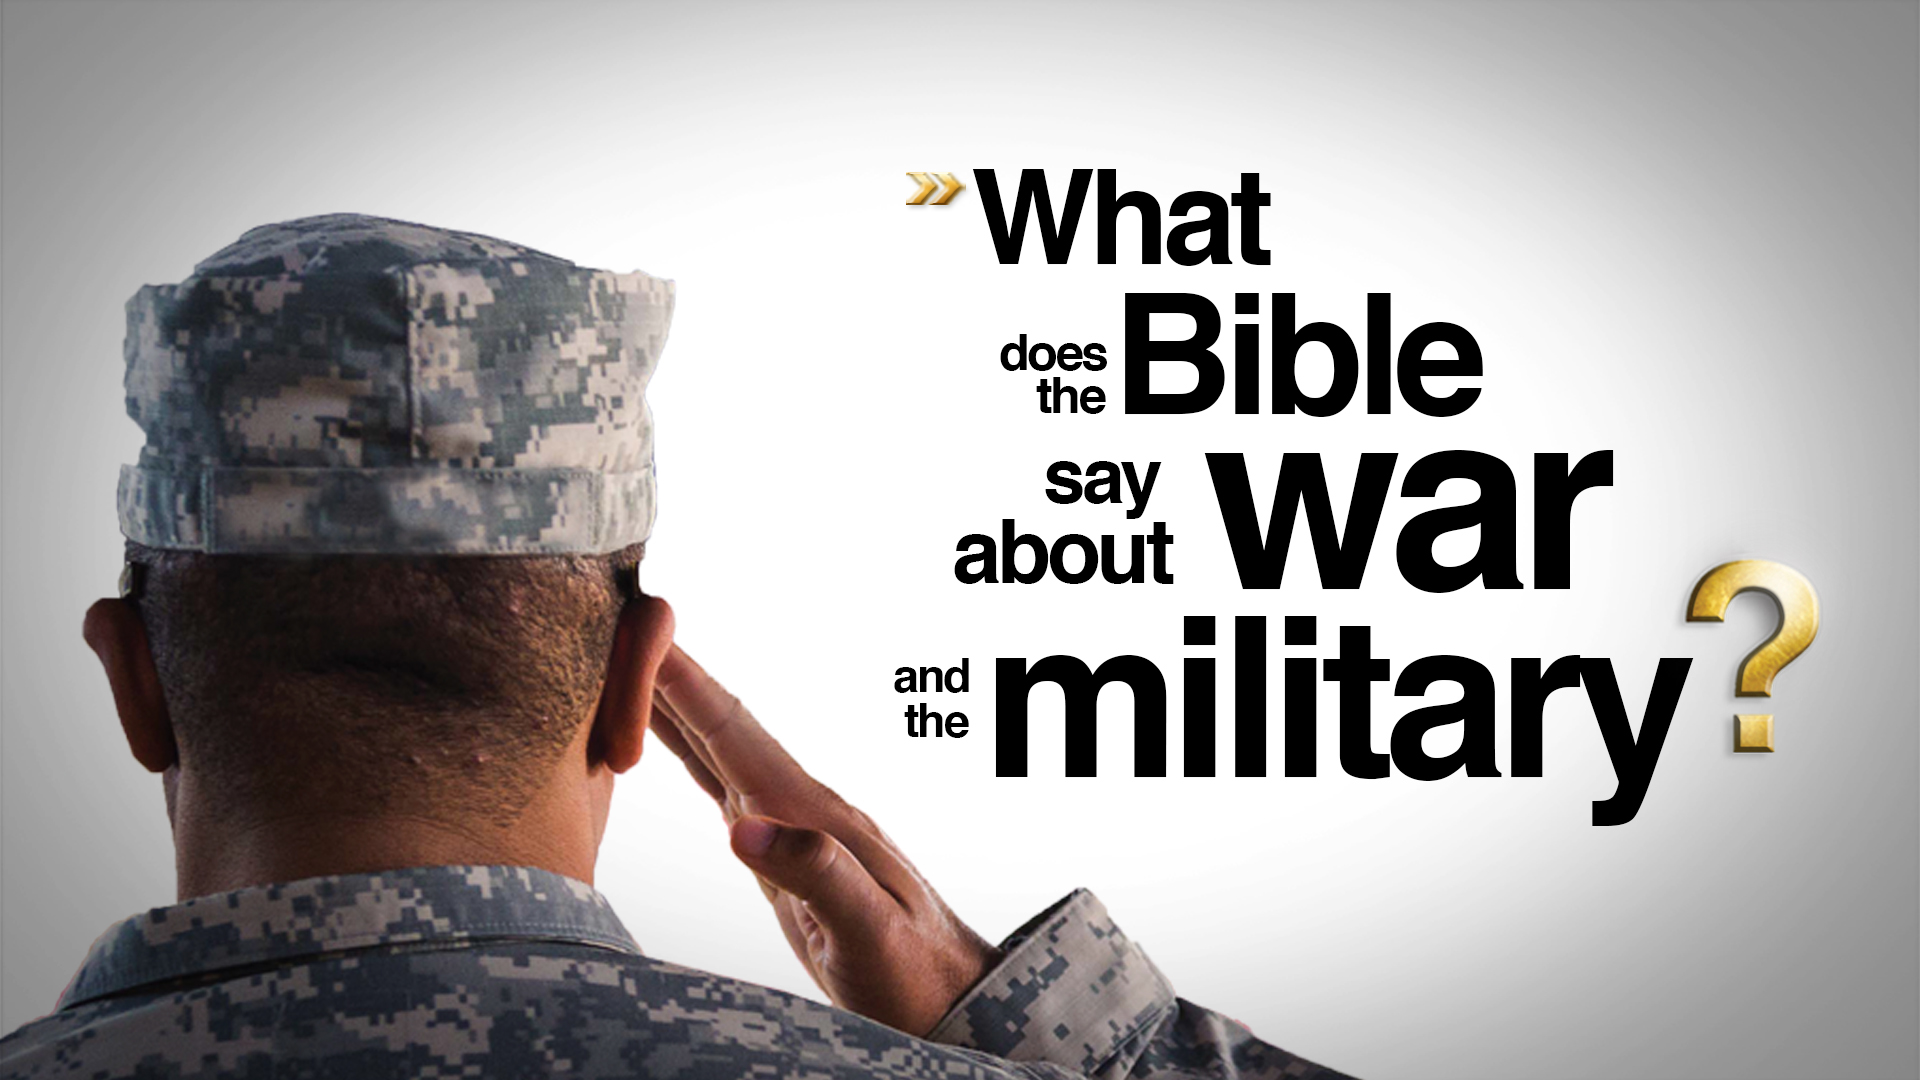 Military and War According to the Bible